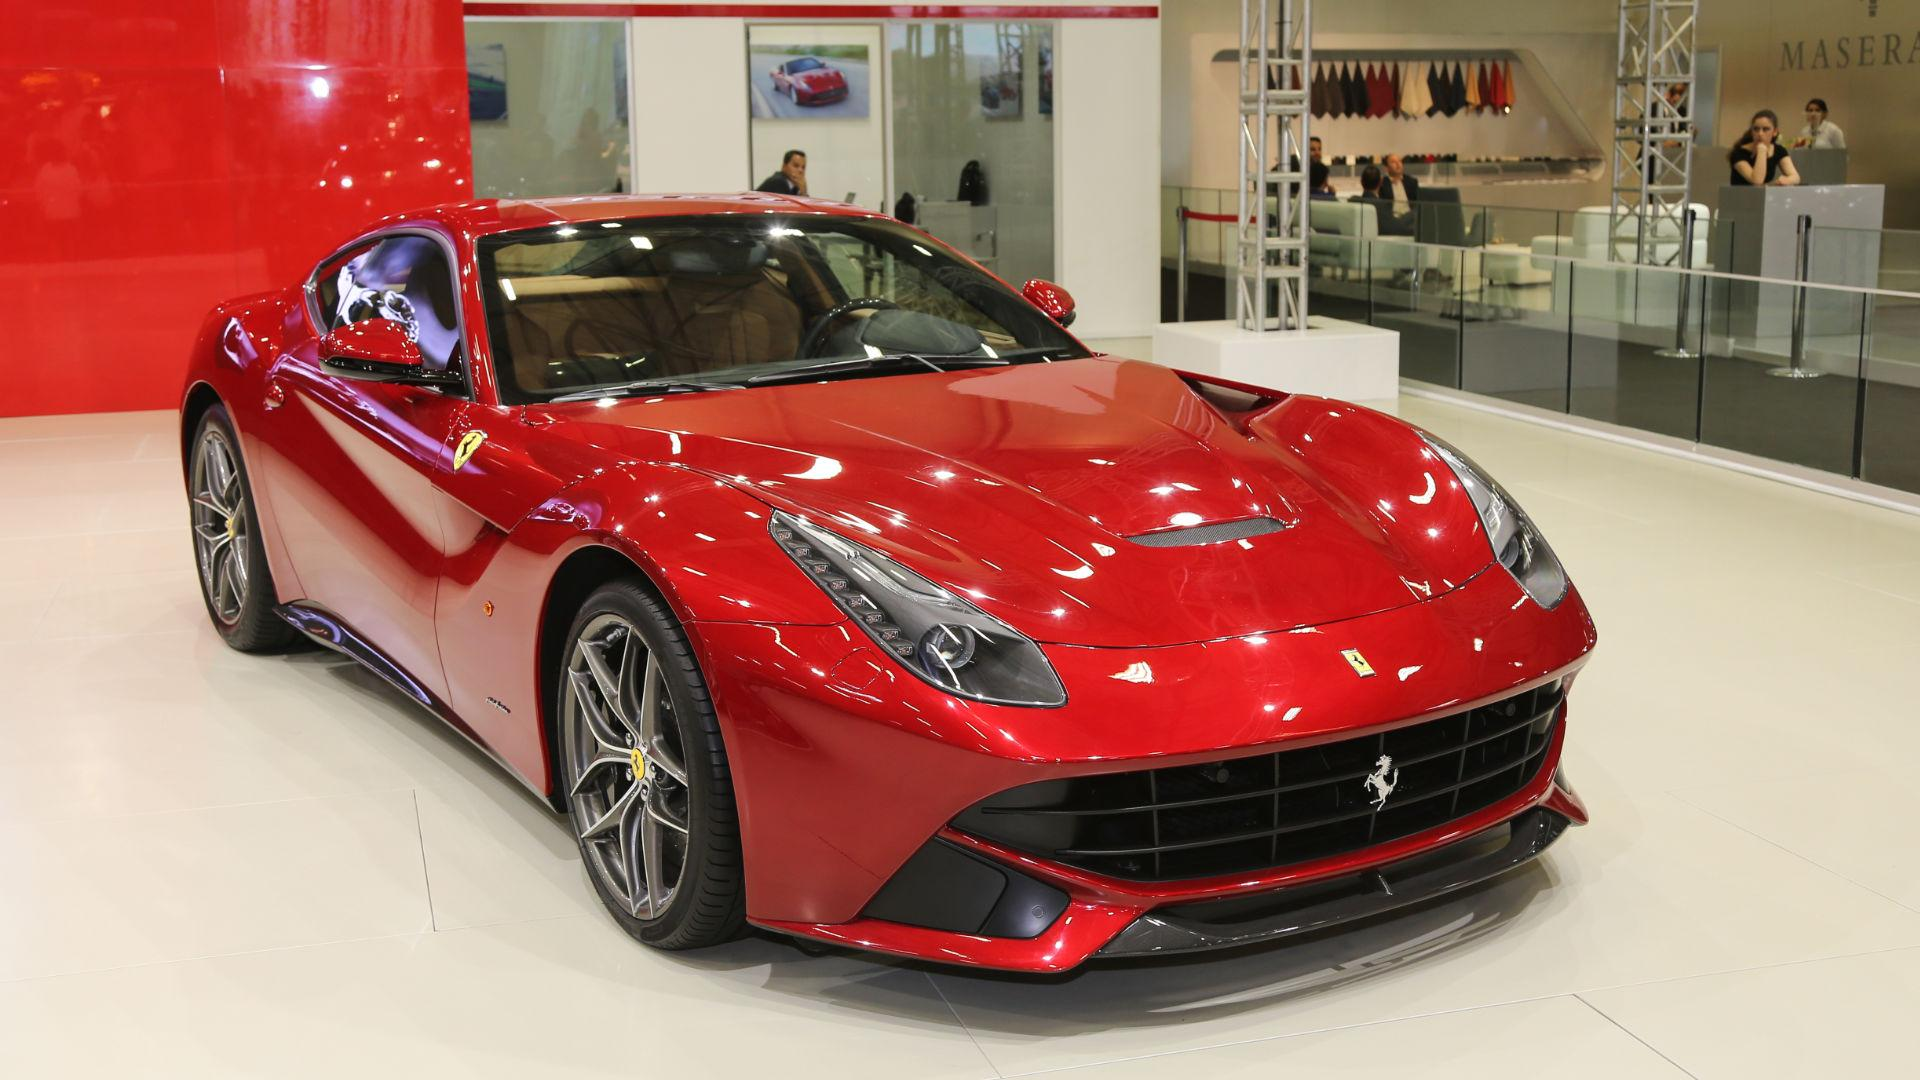 Why The Ferrari F12Berlinetta Is One Of The Best Ferraris Ever